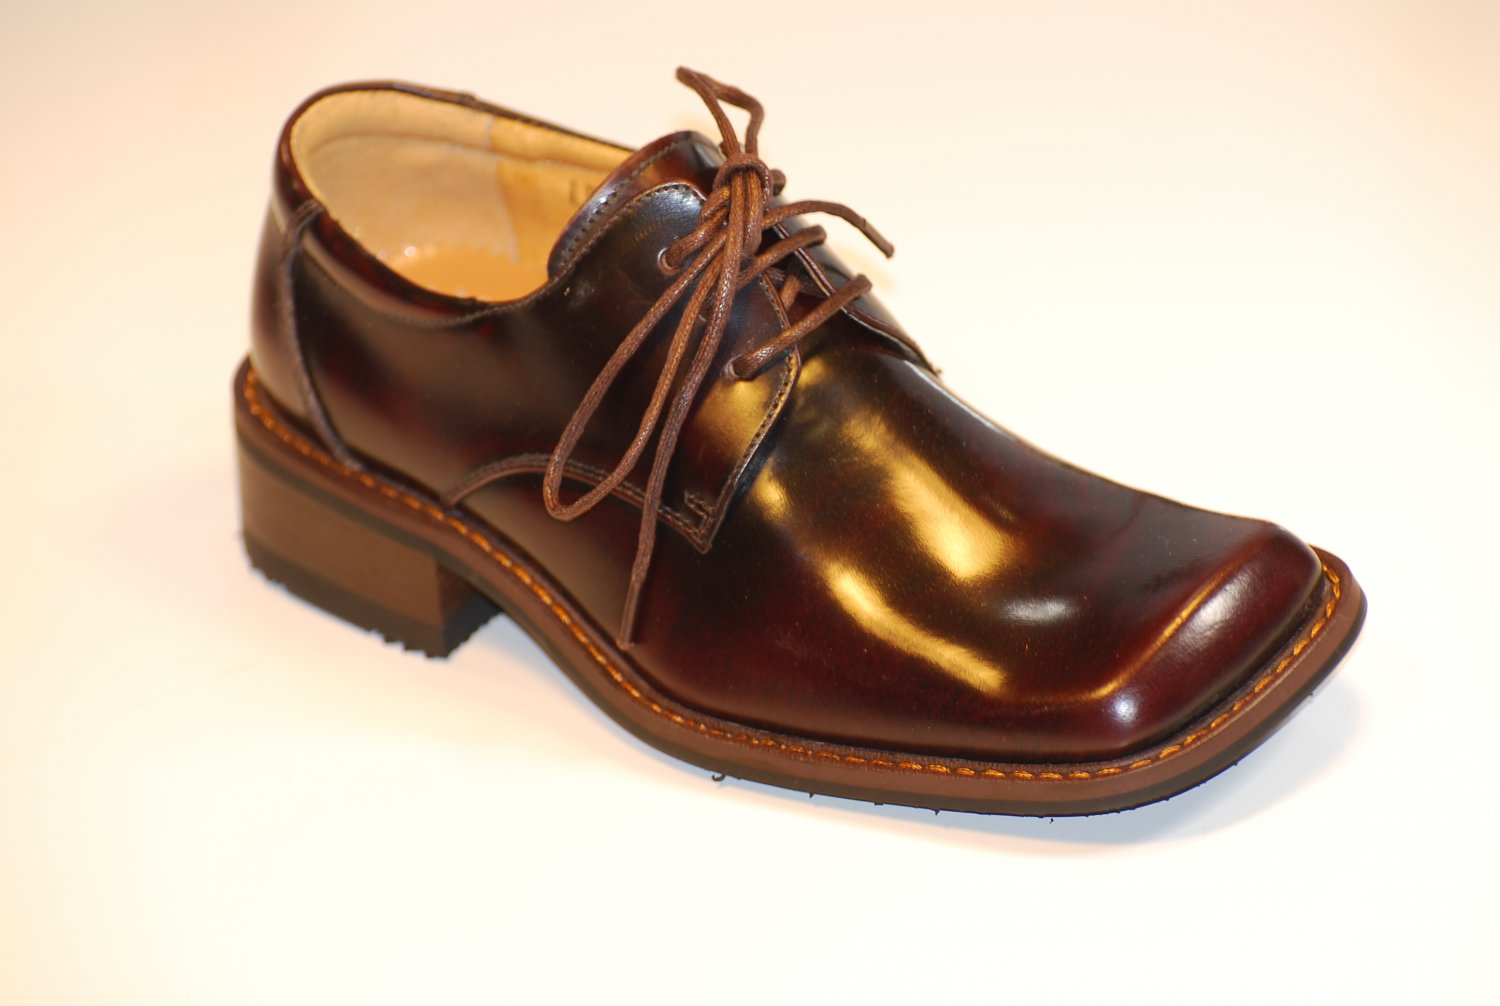 Boys Brown Wine Leather Tuxedo Shoes 12.5 13 1 1.5 2 3